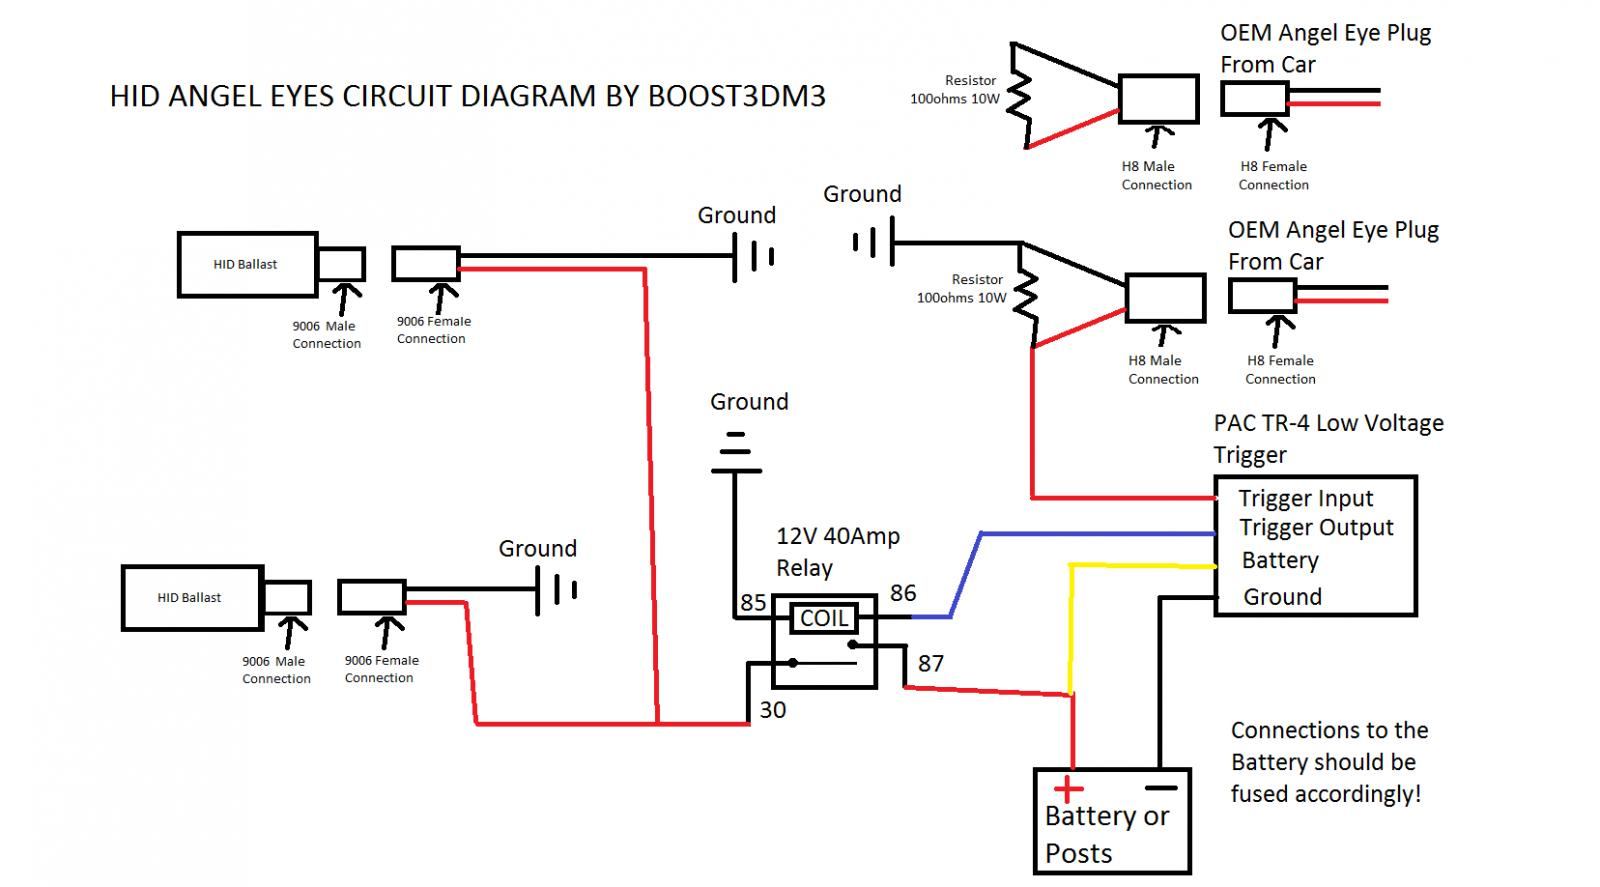 E46 Headlight Wiring Diagram from www.m3post.com